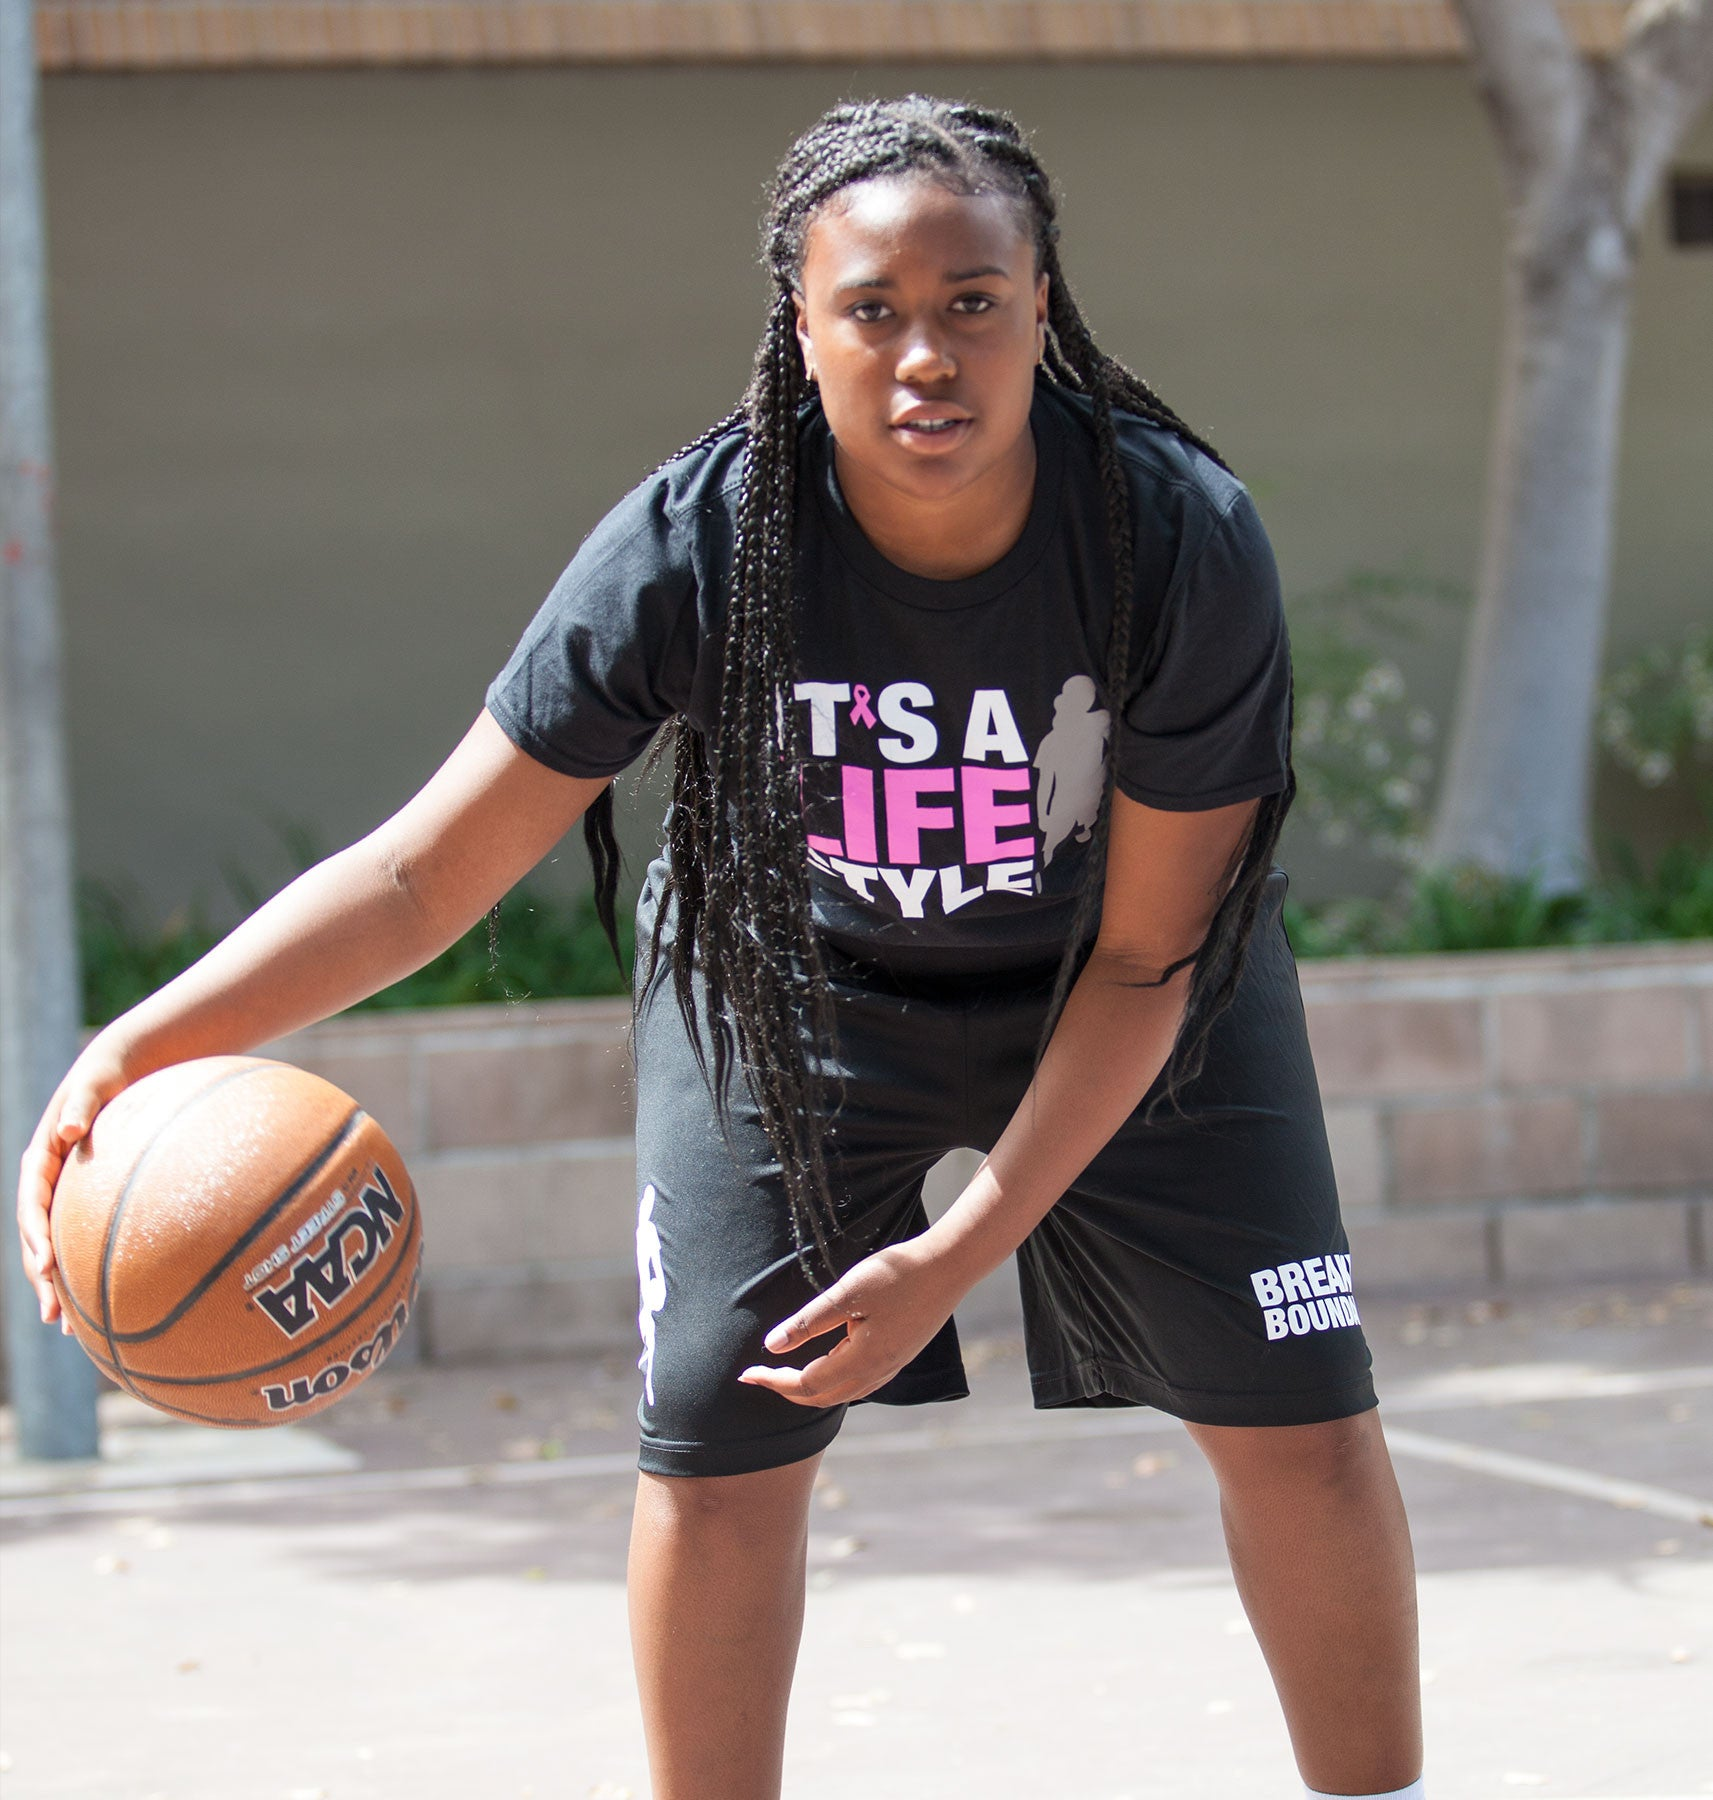 Breast Cancer Awareness Tee - Women's Basketball - Breaking Boundaries Apparel  - 3